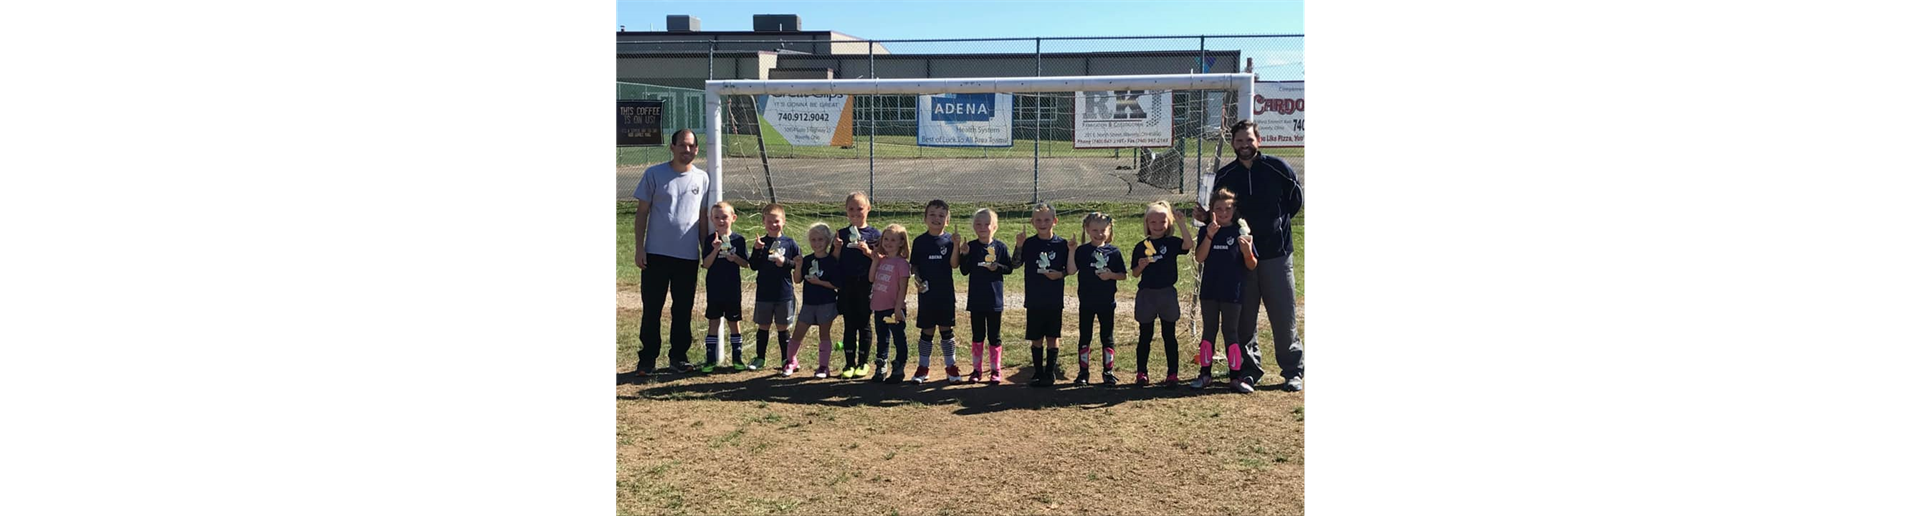 Our U8 Fall Champions!